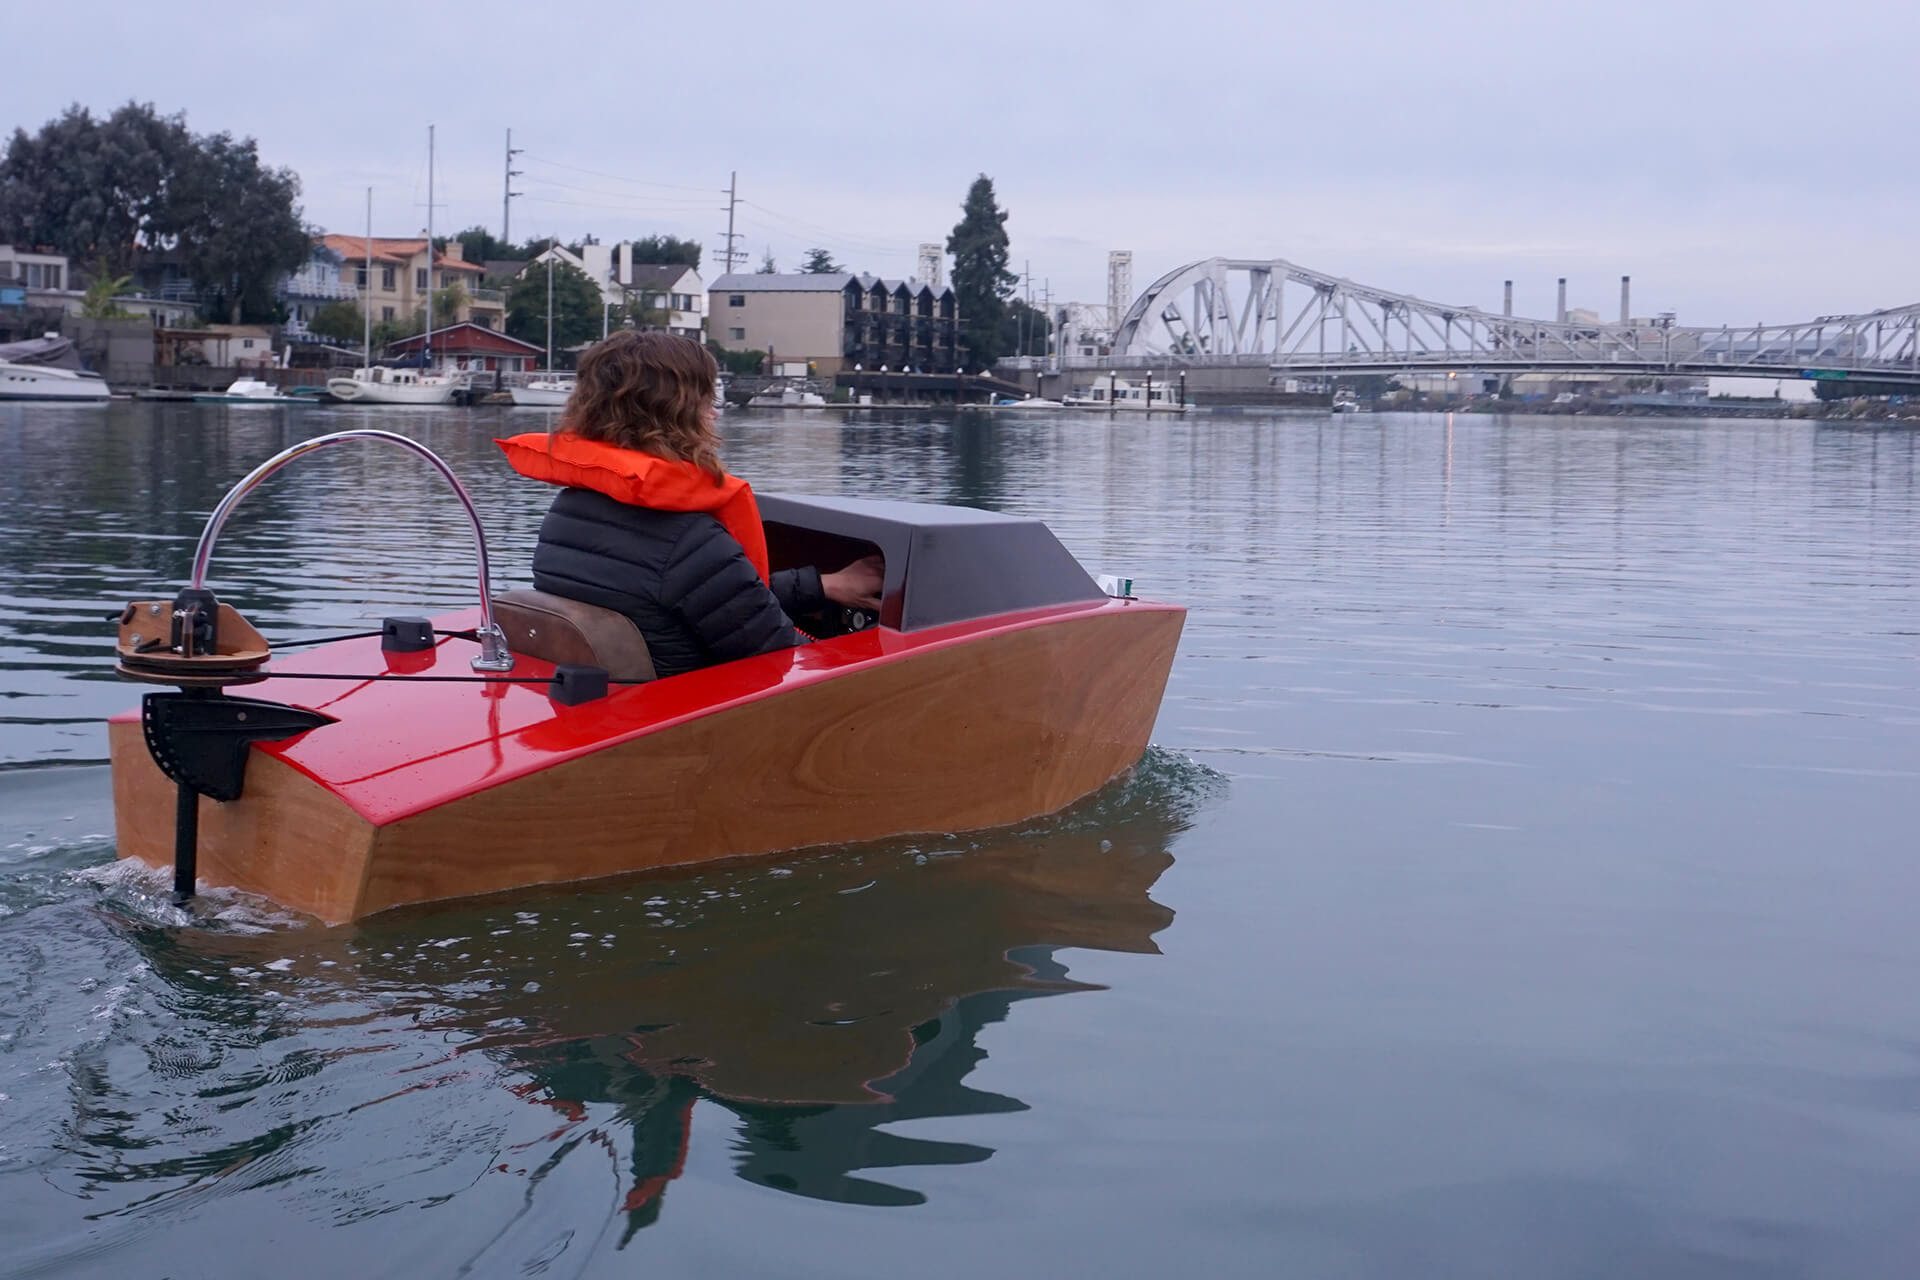 Erika riding towards the bridge at the first launch of the mini electric boat